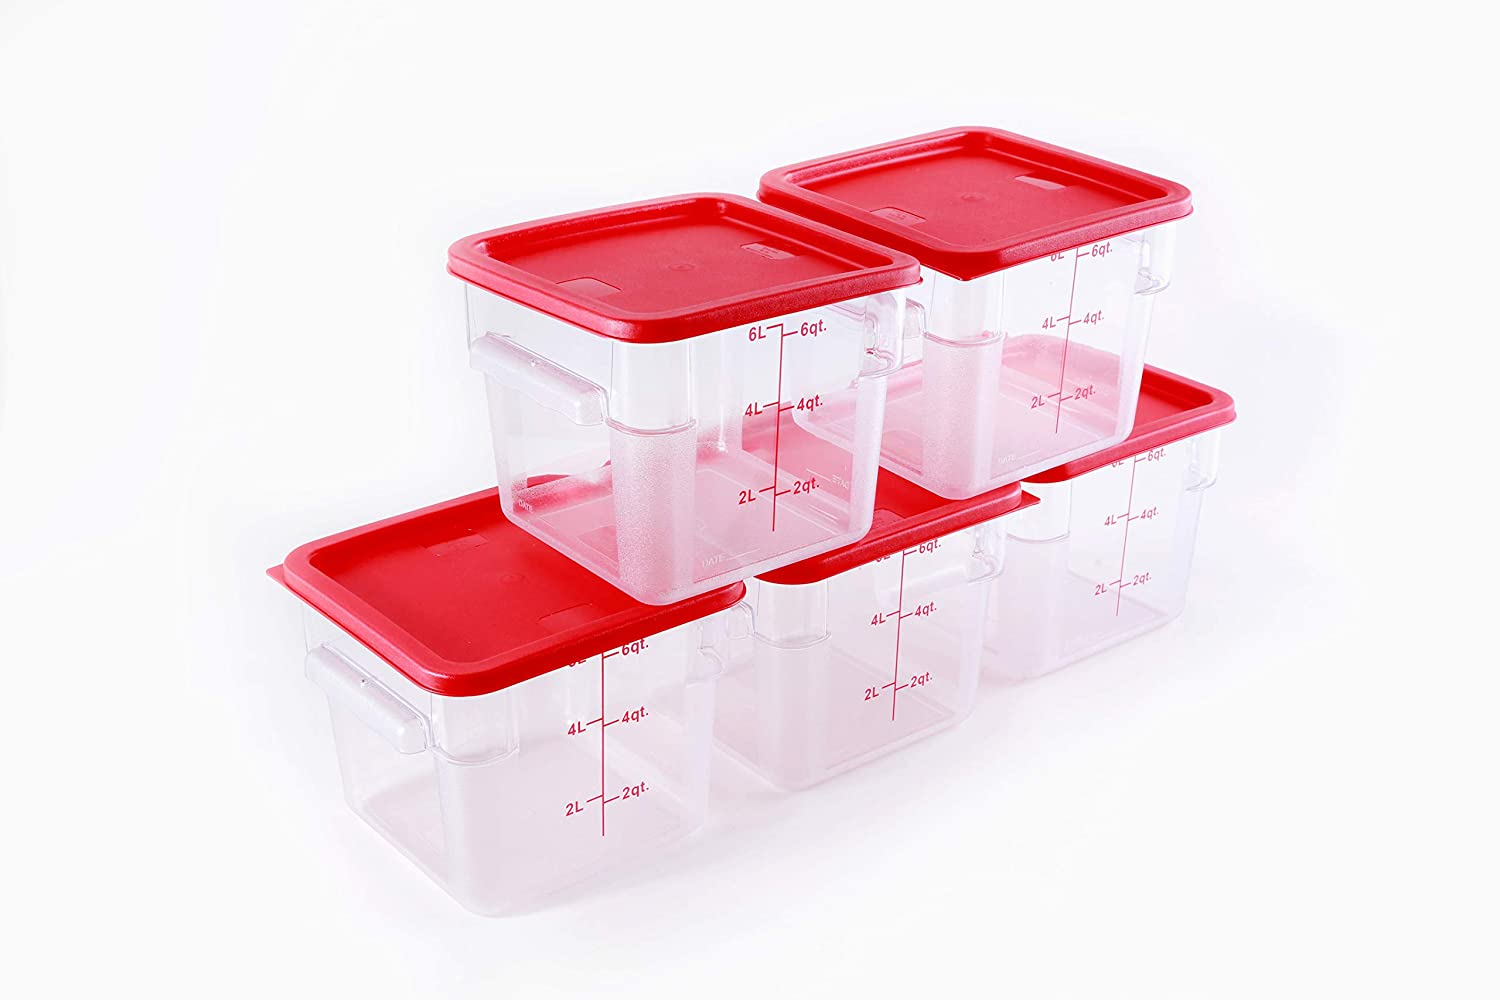 Hakka 6 Qt Commercial Grade Square Food Storage Containers with Lids,Polycarbonate,Clear - Case of 5